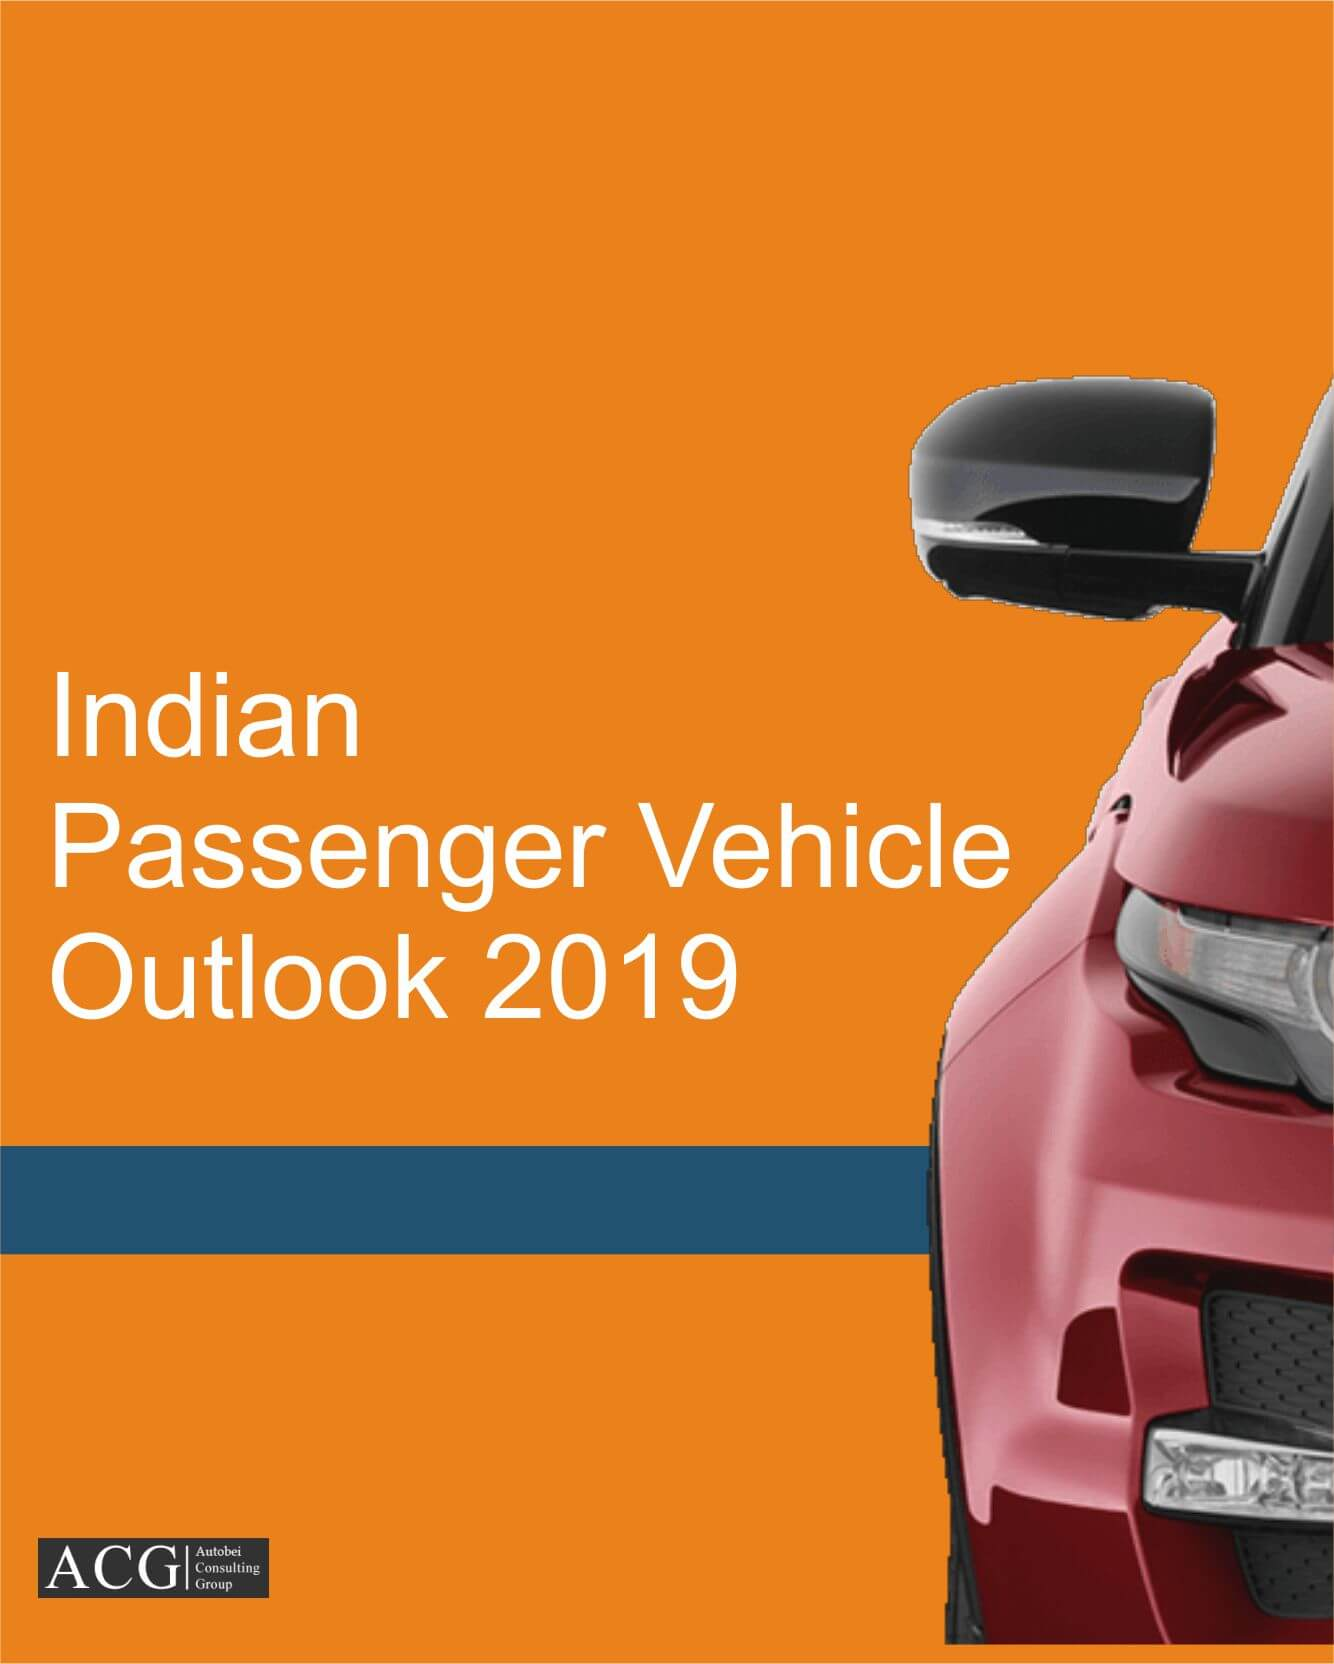 Indian Passenger Vehicle Outlook 2019